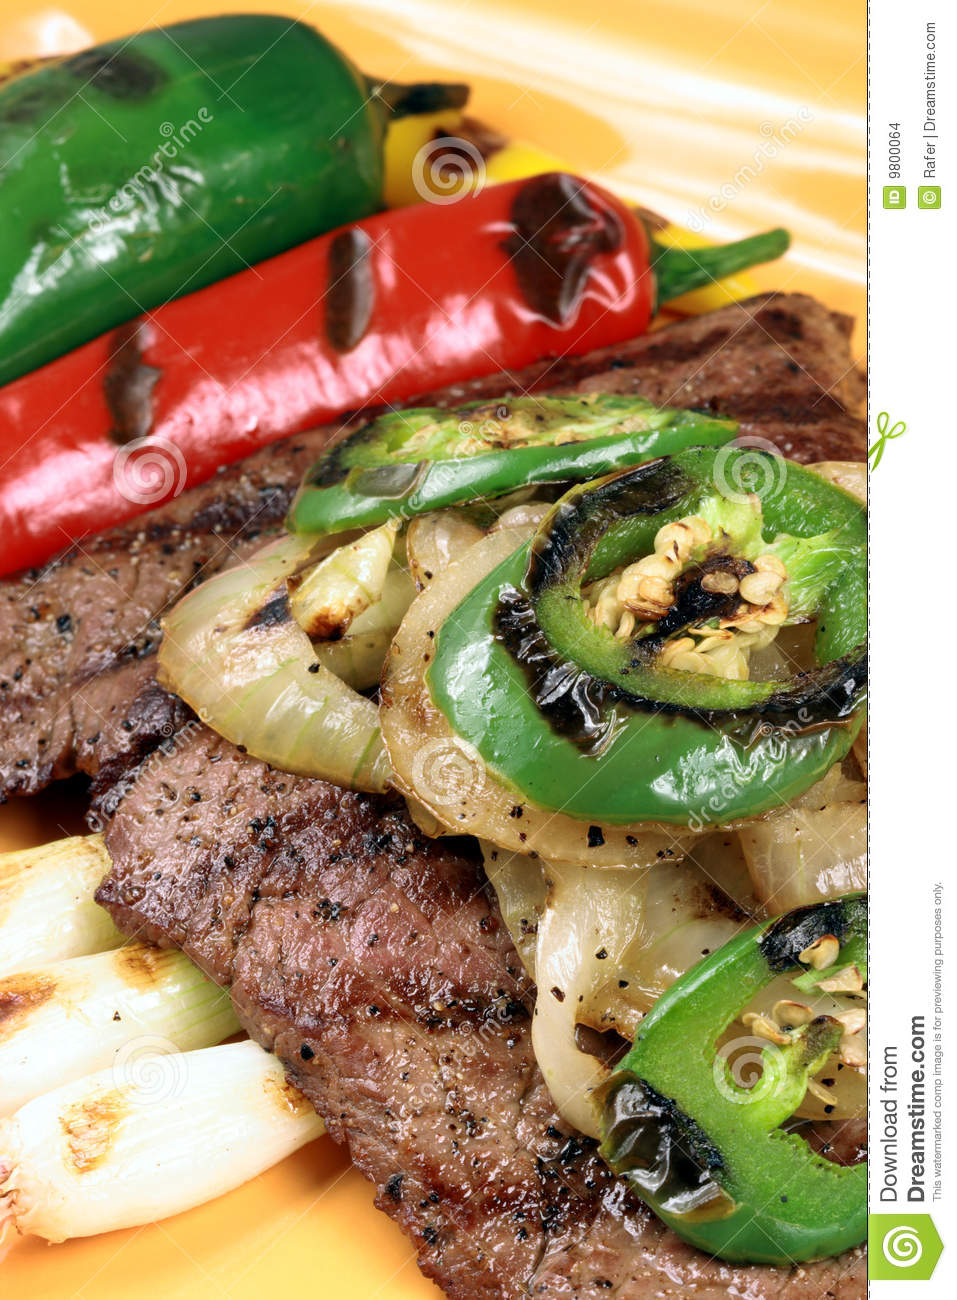 Mexican Juicy Beef Grilled To Perfection Thick And Flavorful Cut With